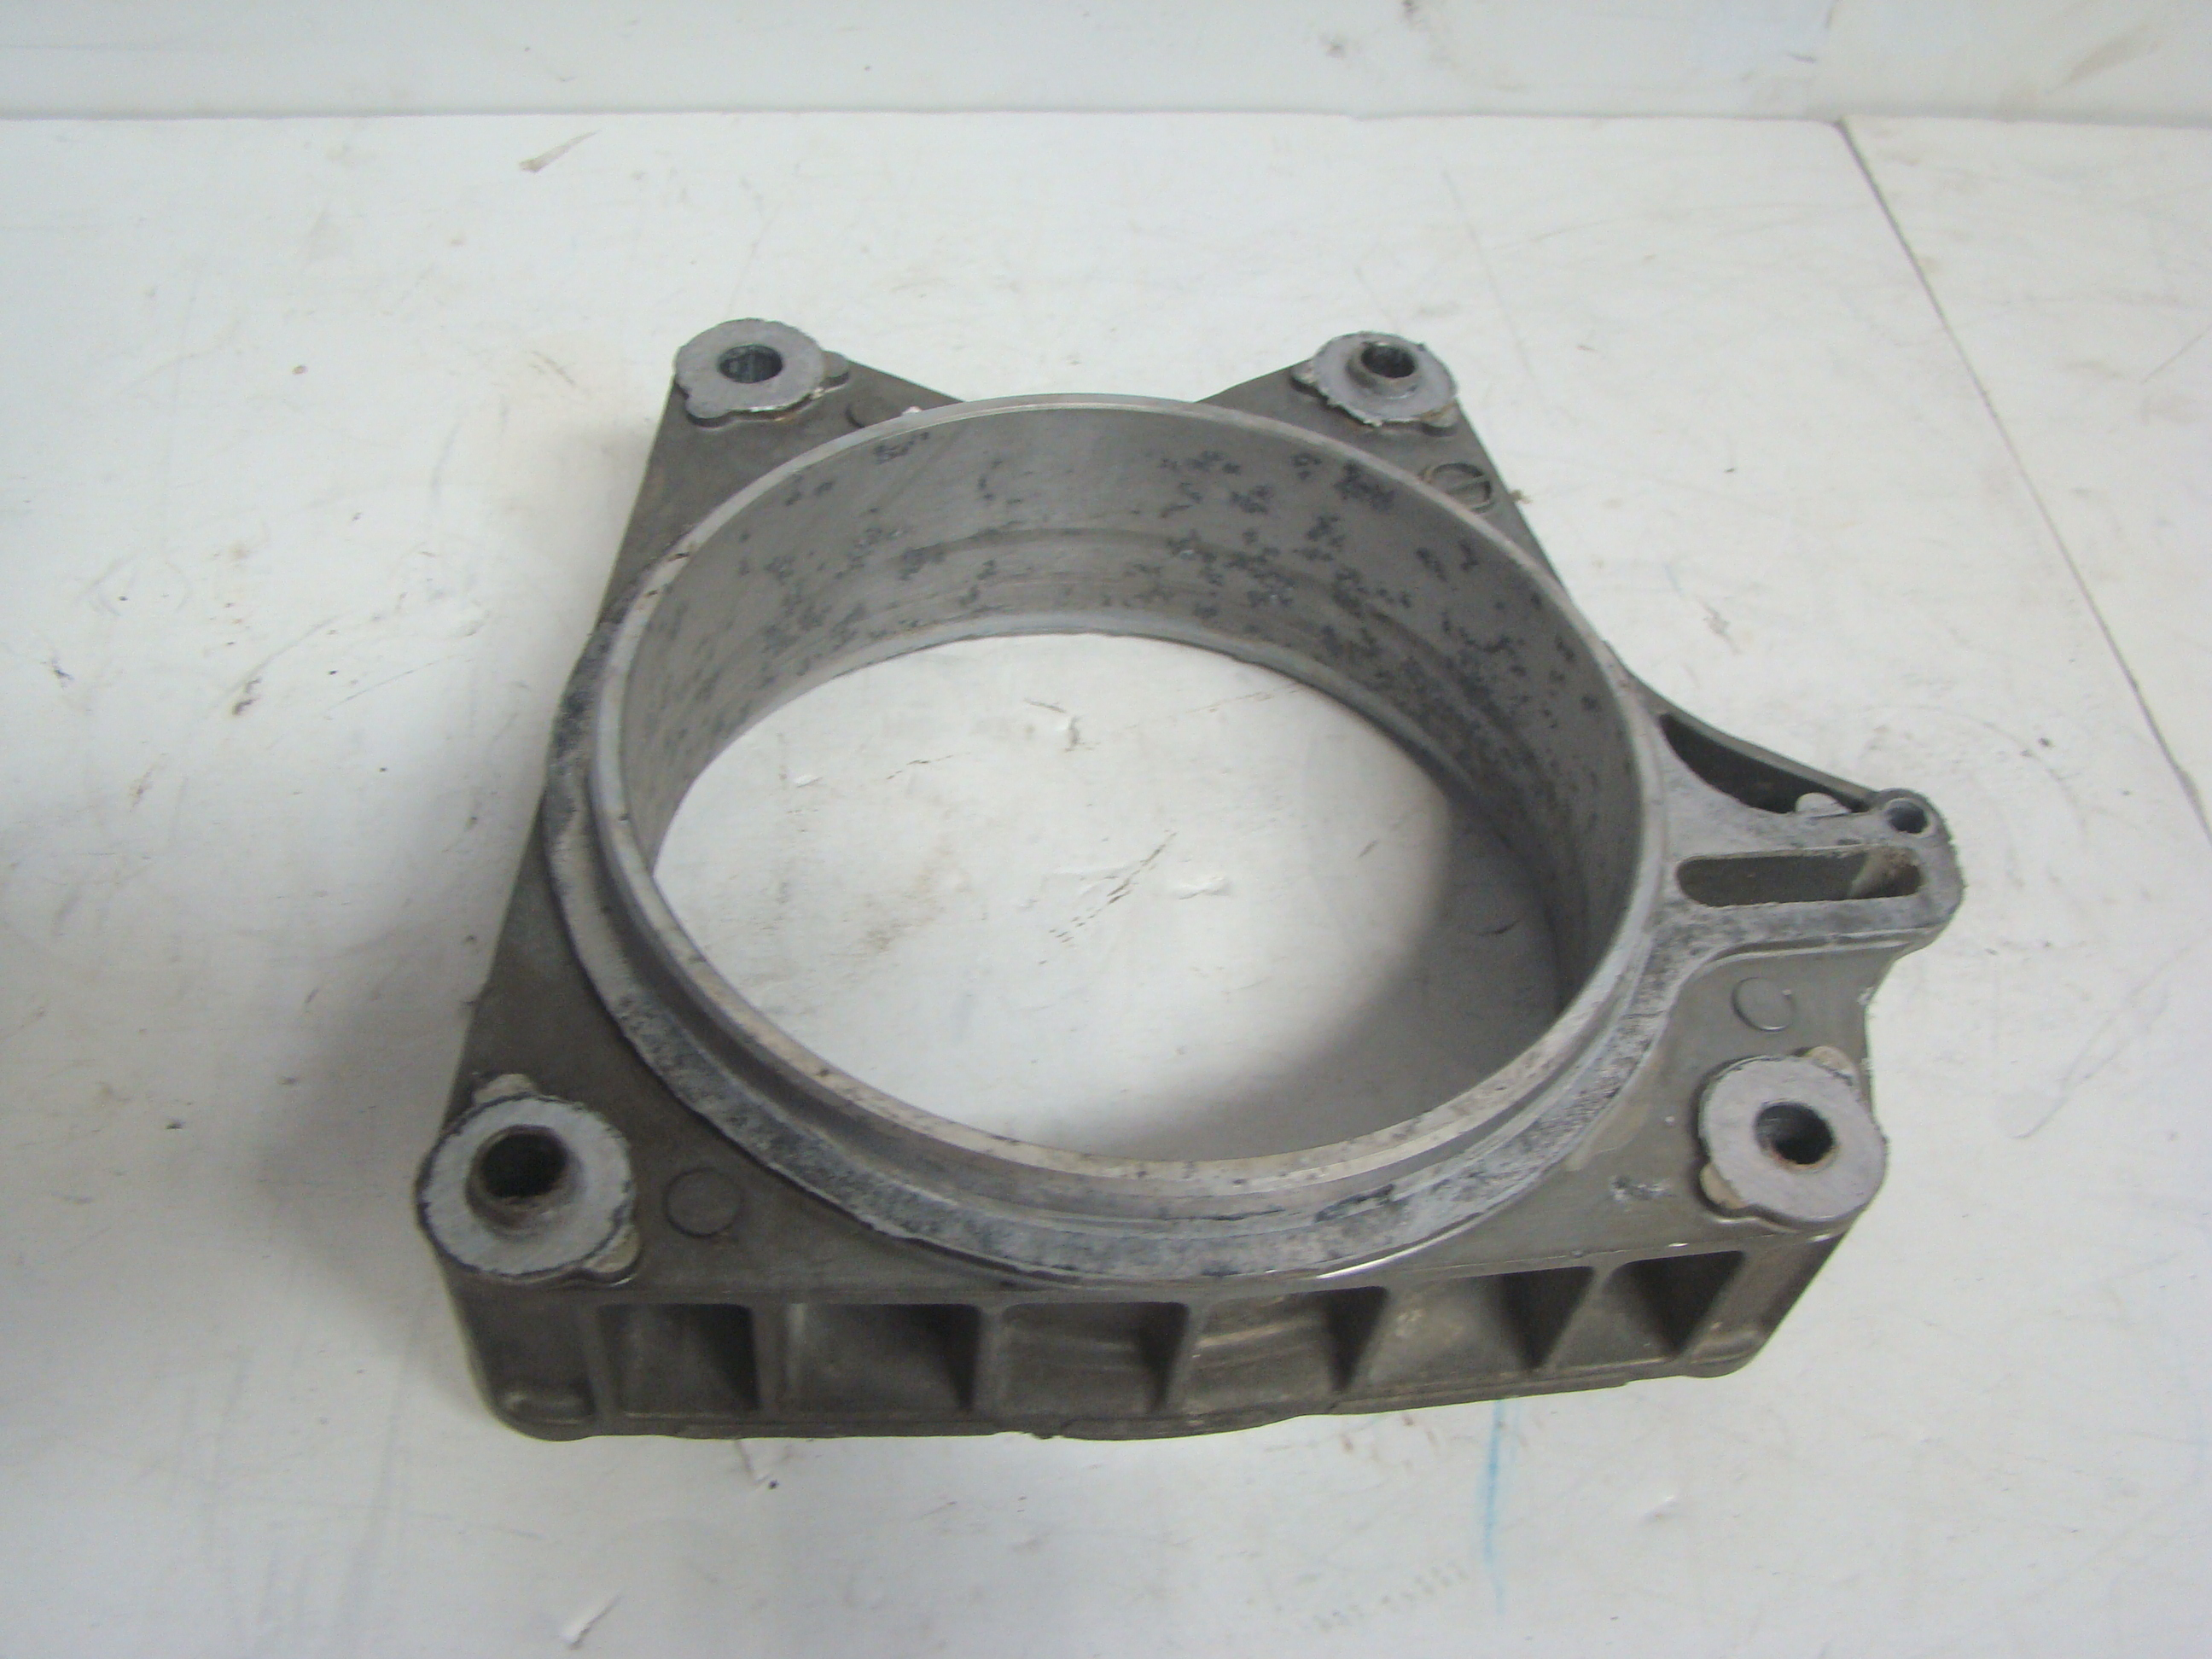 Yamaha Waverunner 2002-2008 FX HO GP1300 FX140 Impeller Housing  60E-51317-00-94